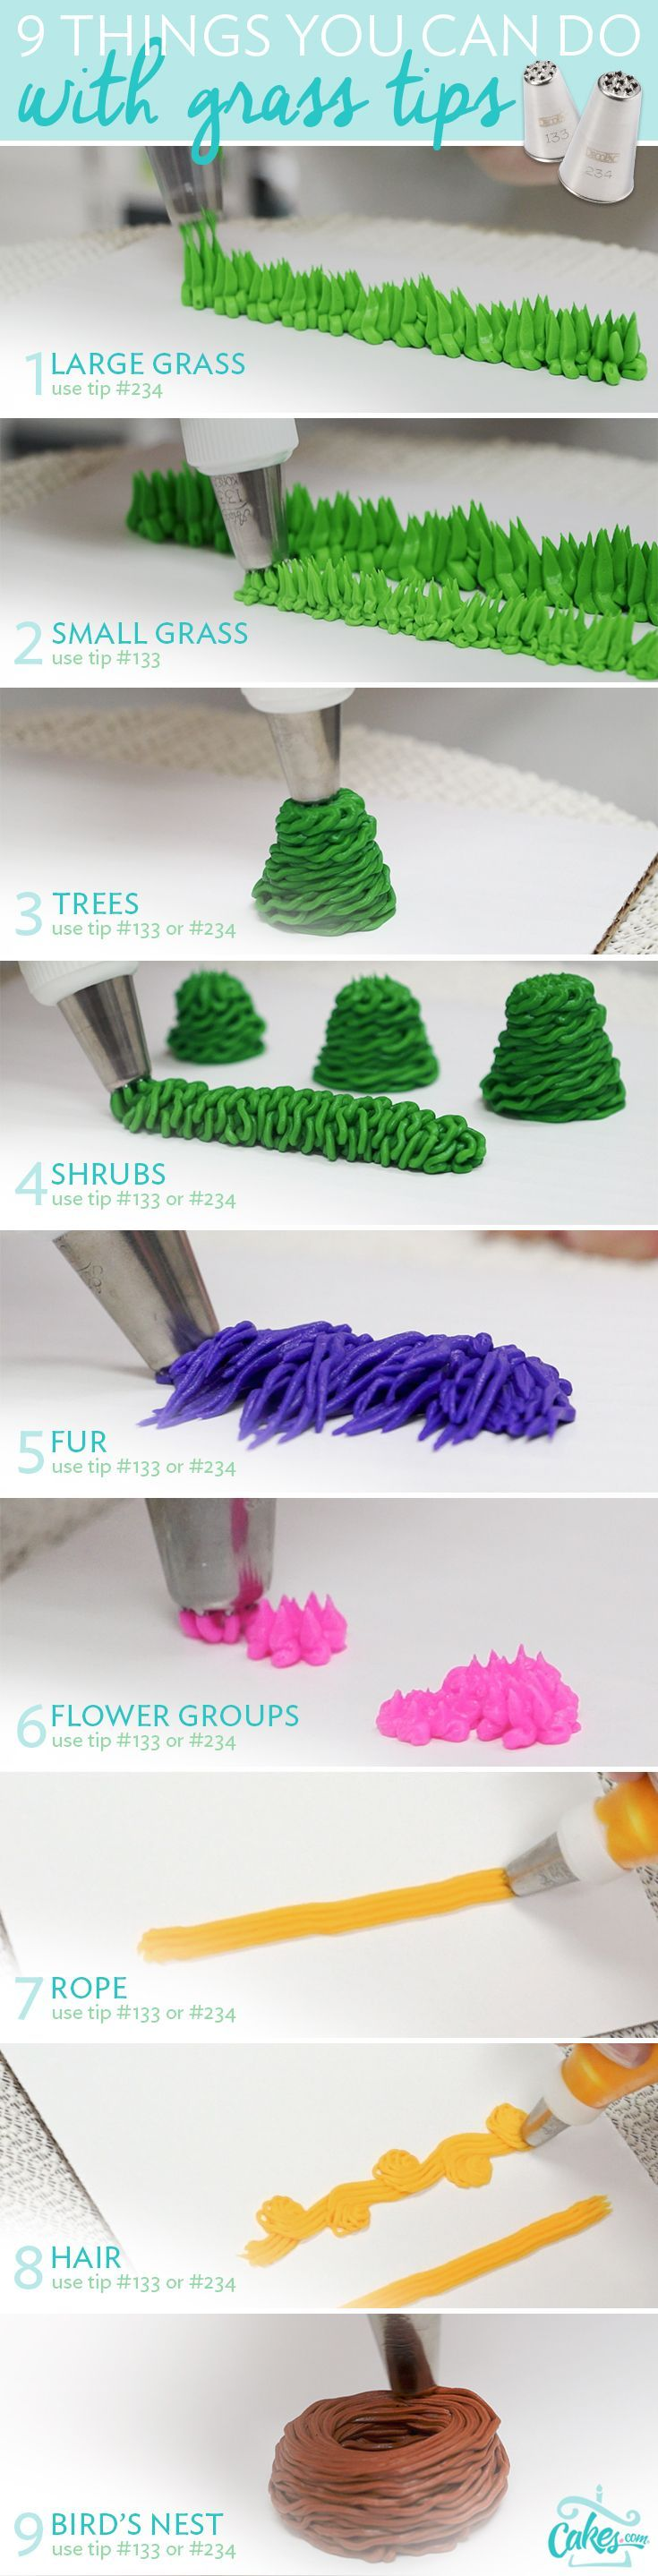 9 Ways To Use Grass Piping Tips Cake Decorating